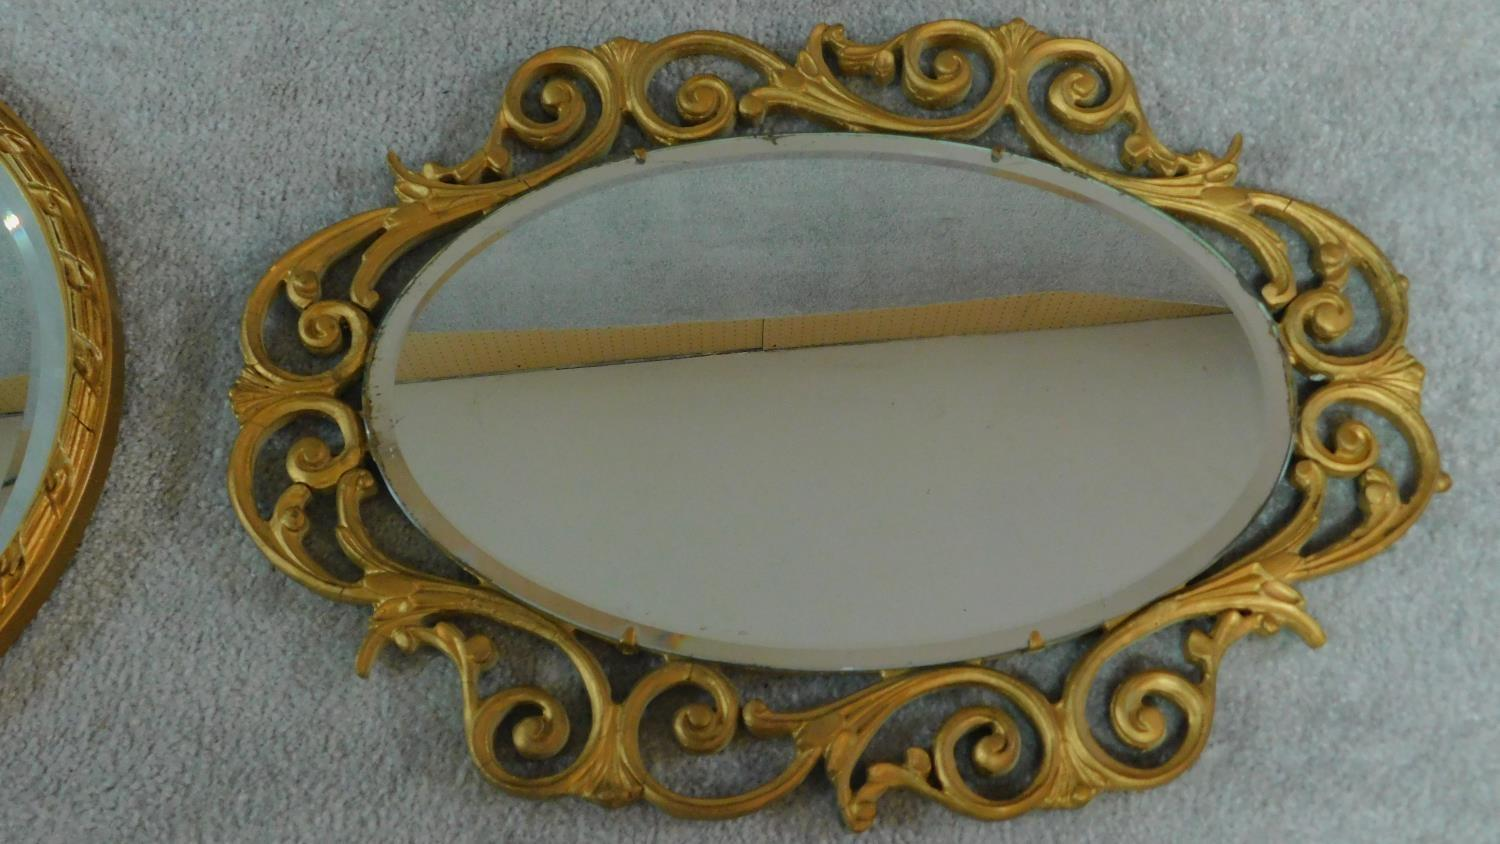 A rectangular gilt wall mirror and two oval gilt mirrors. 120x34cm - Image 2 of 5